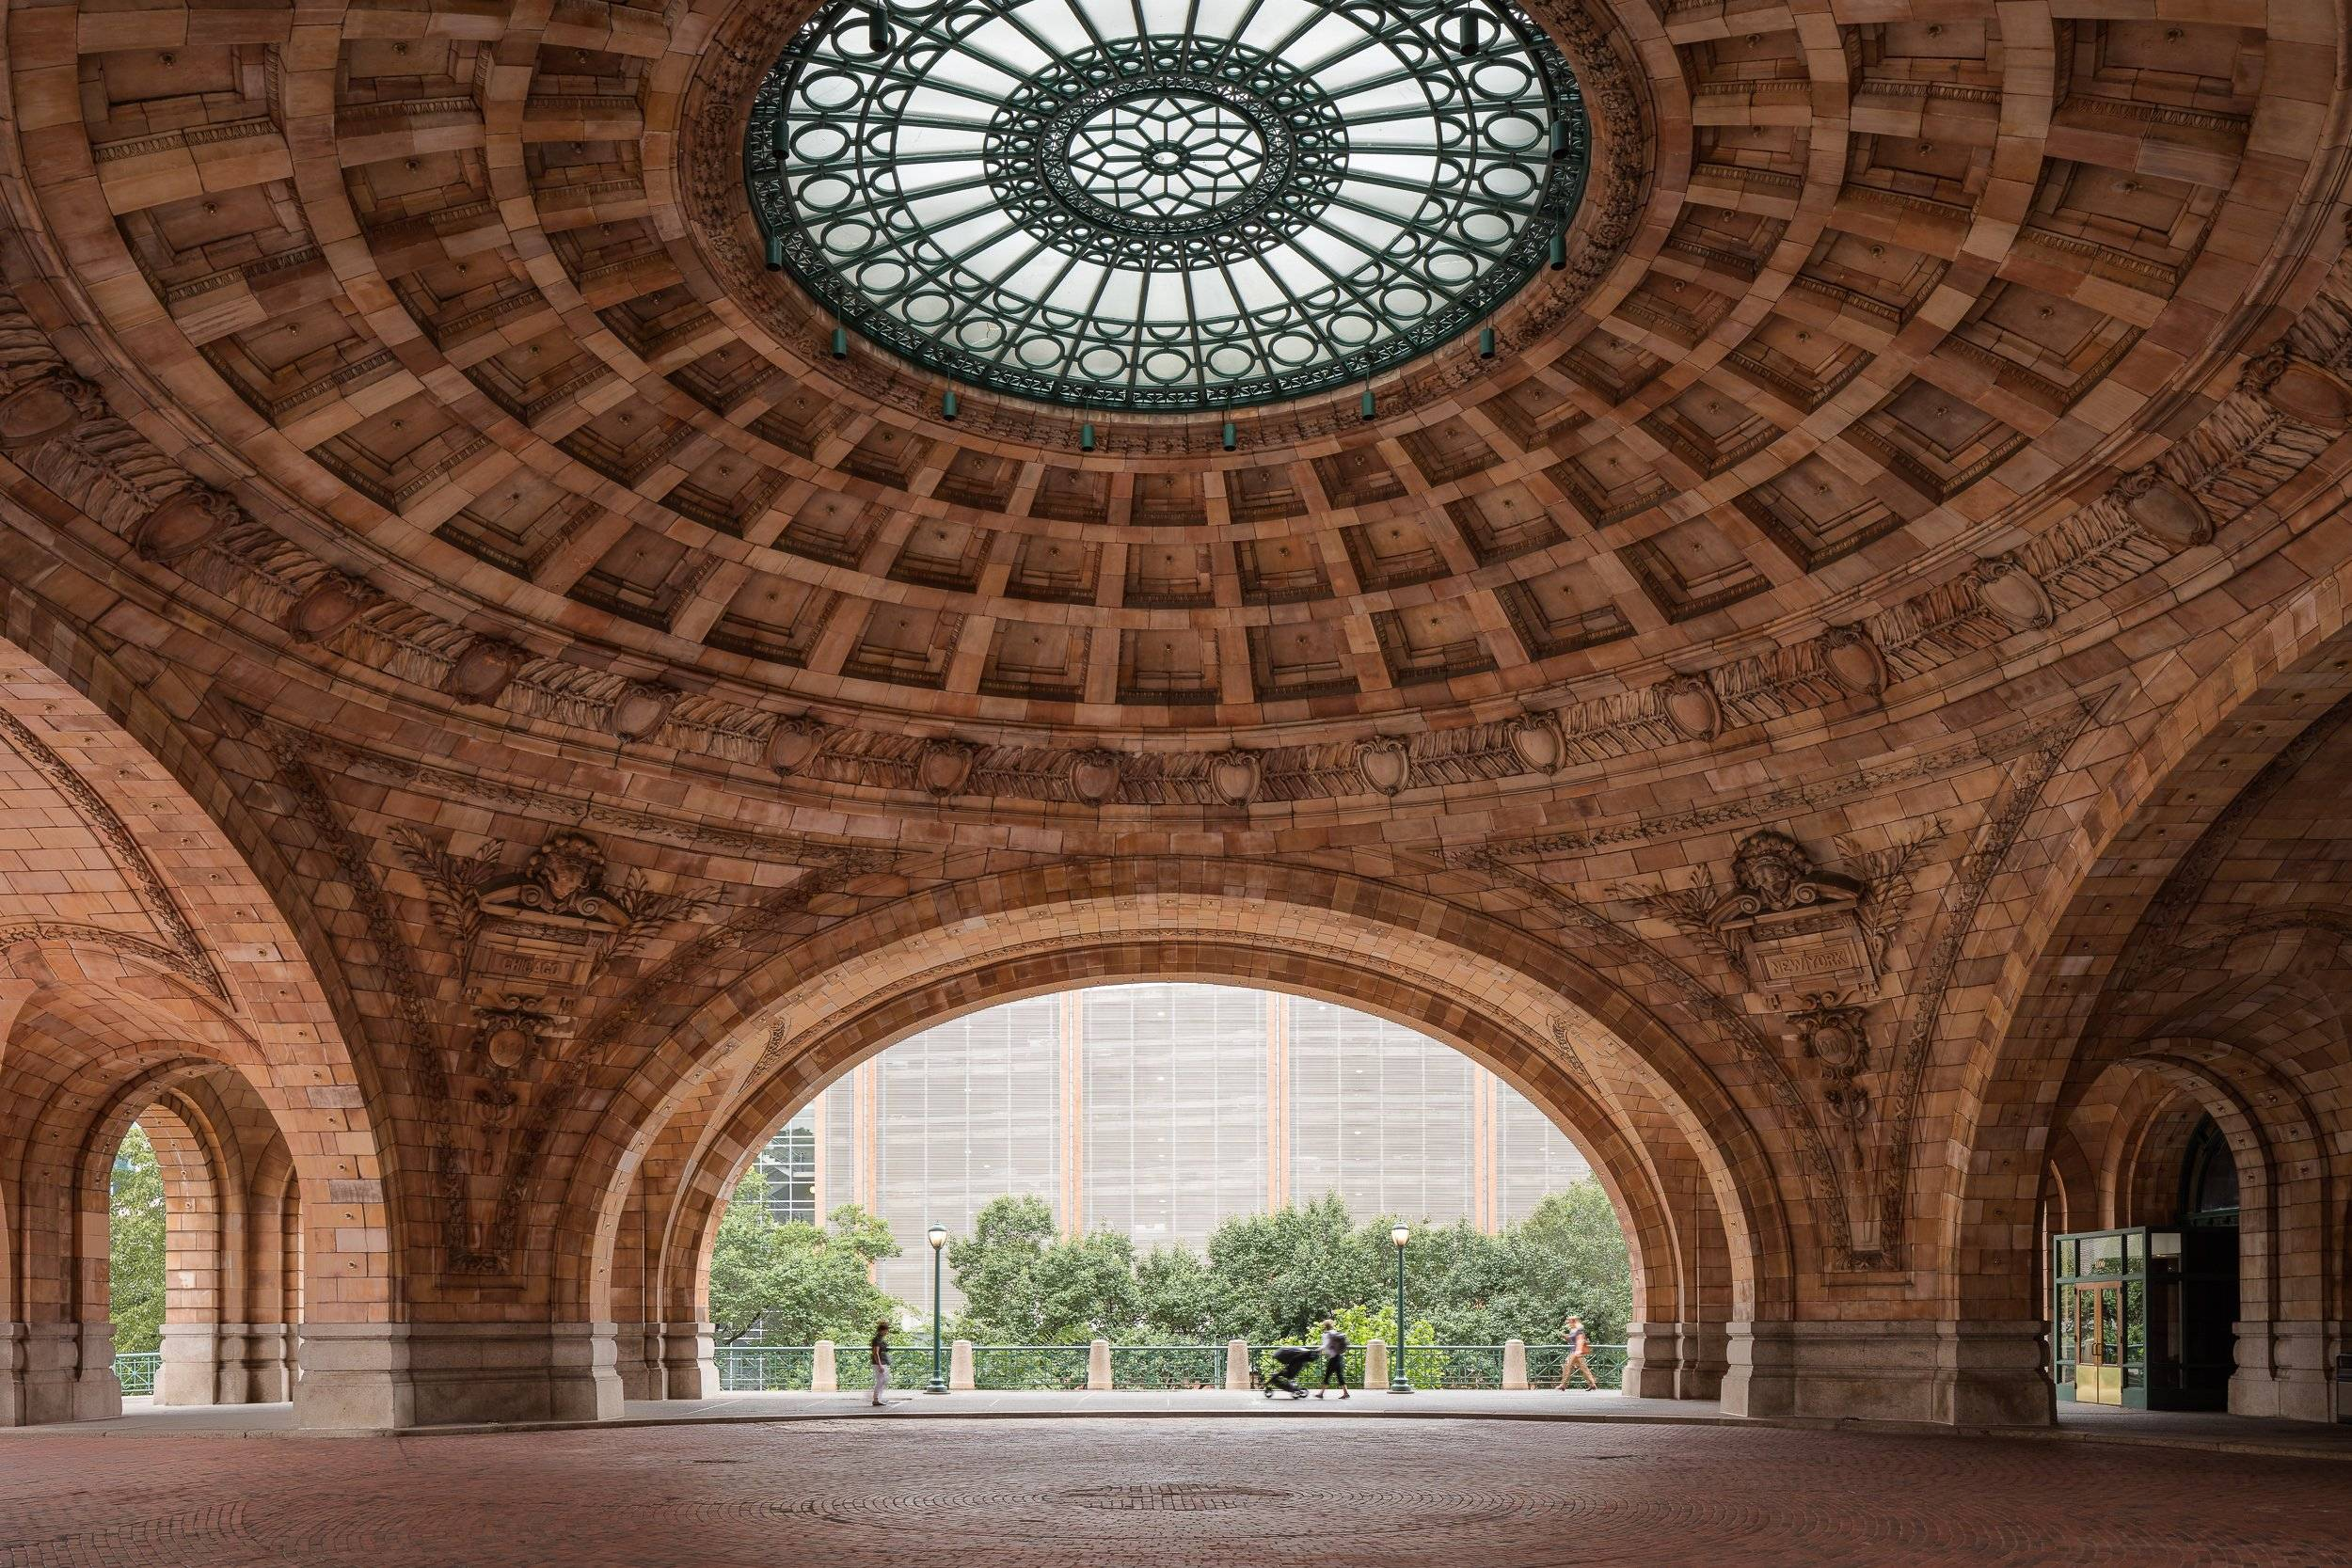 Gorgeous rotunda with historial architecture